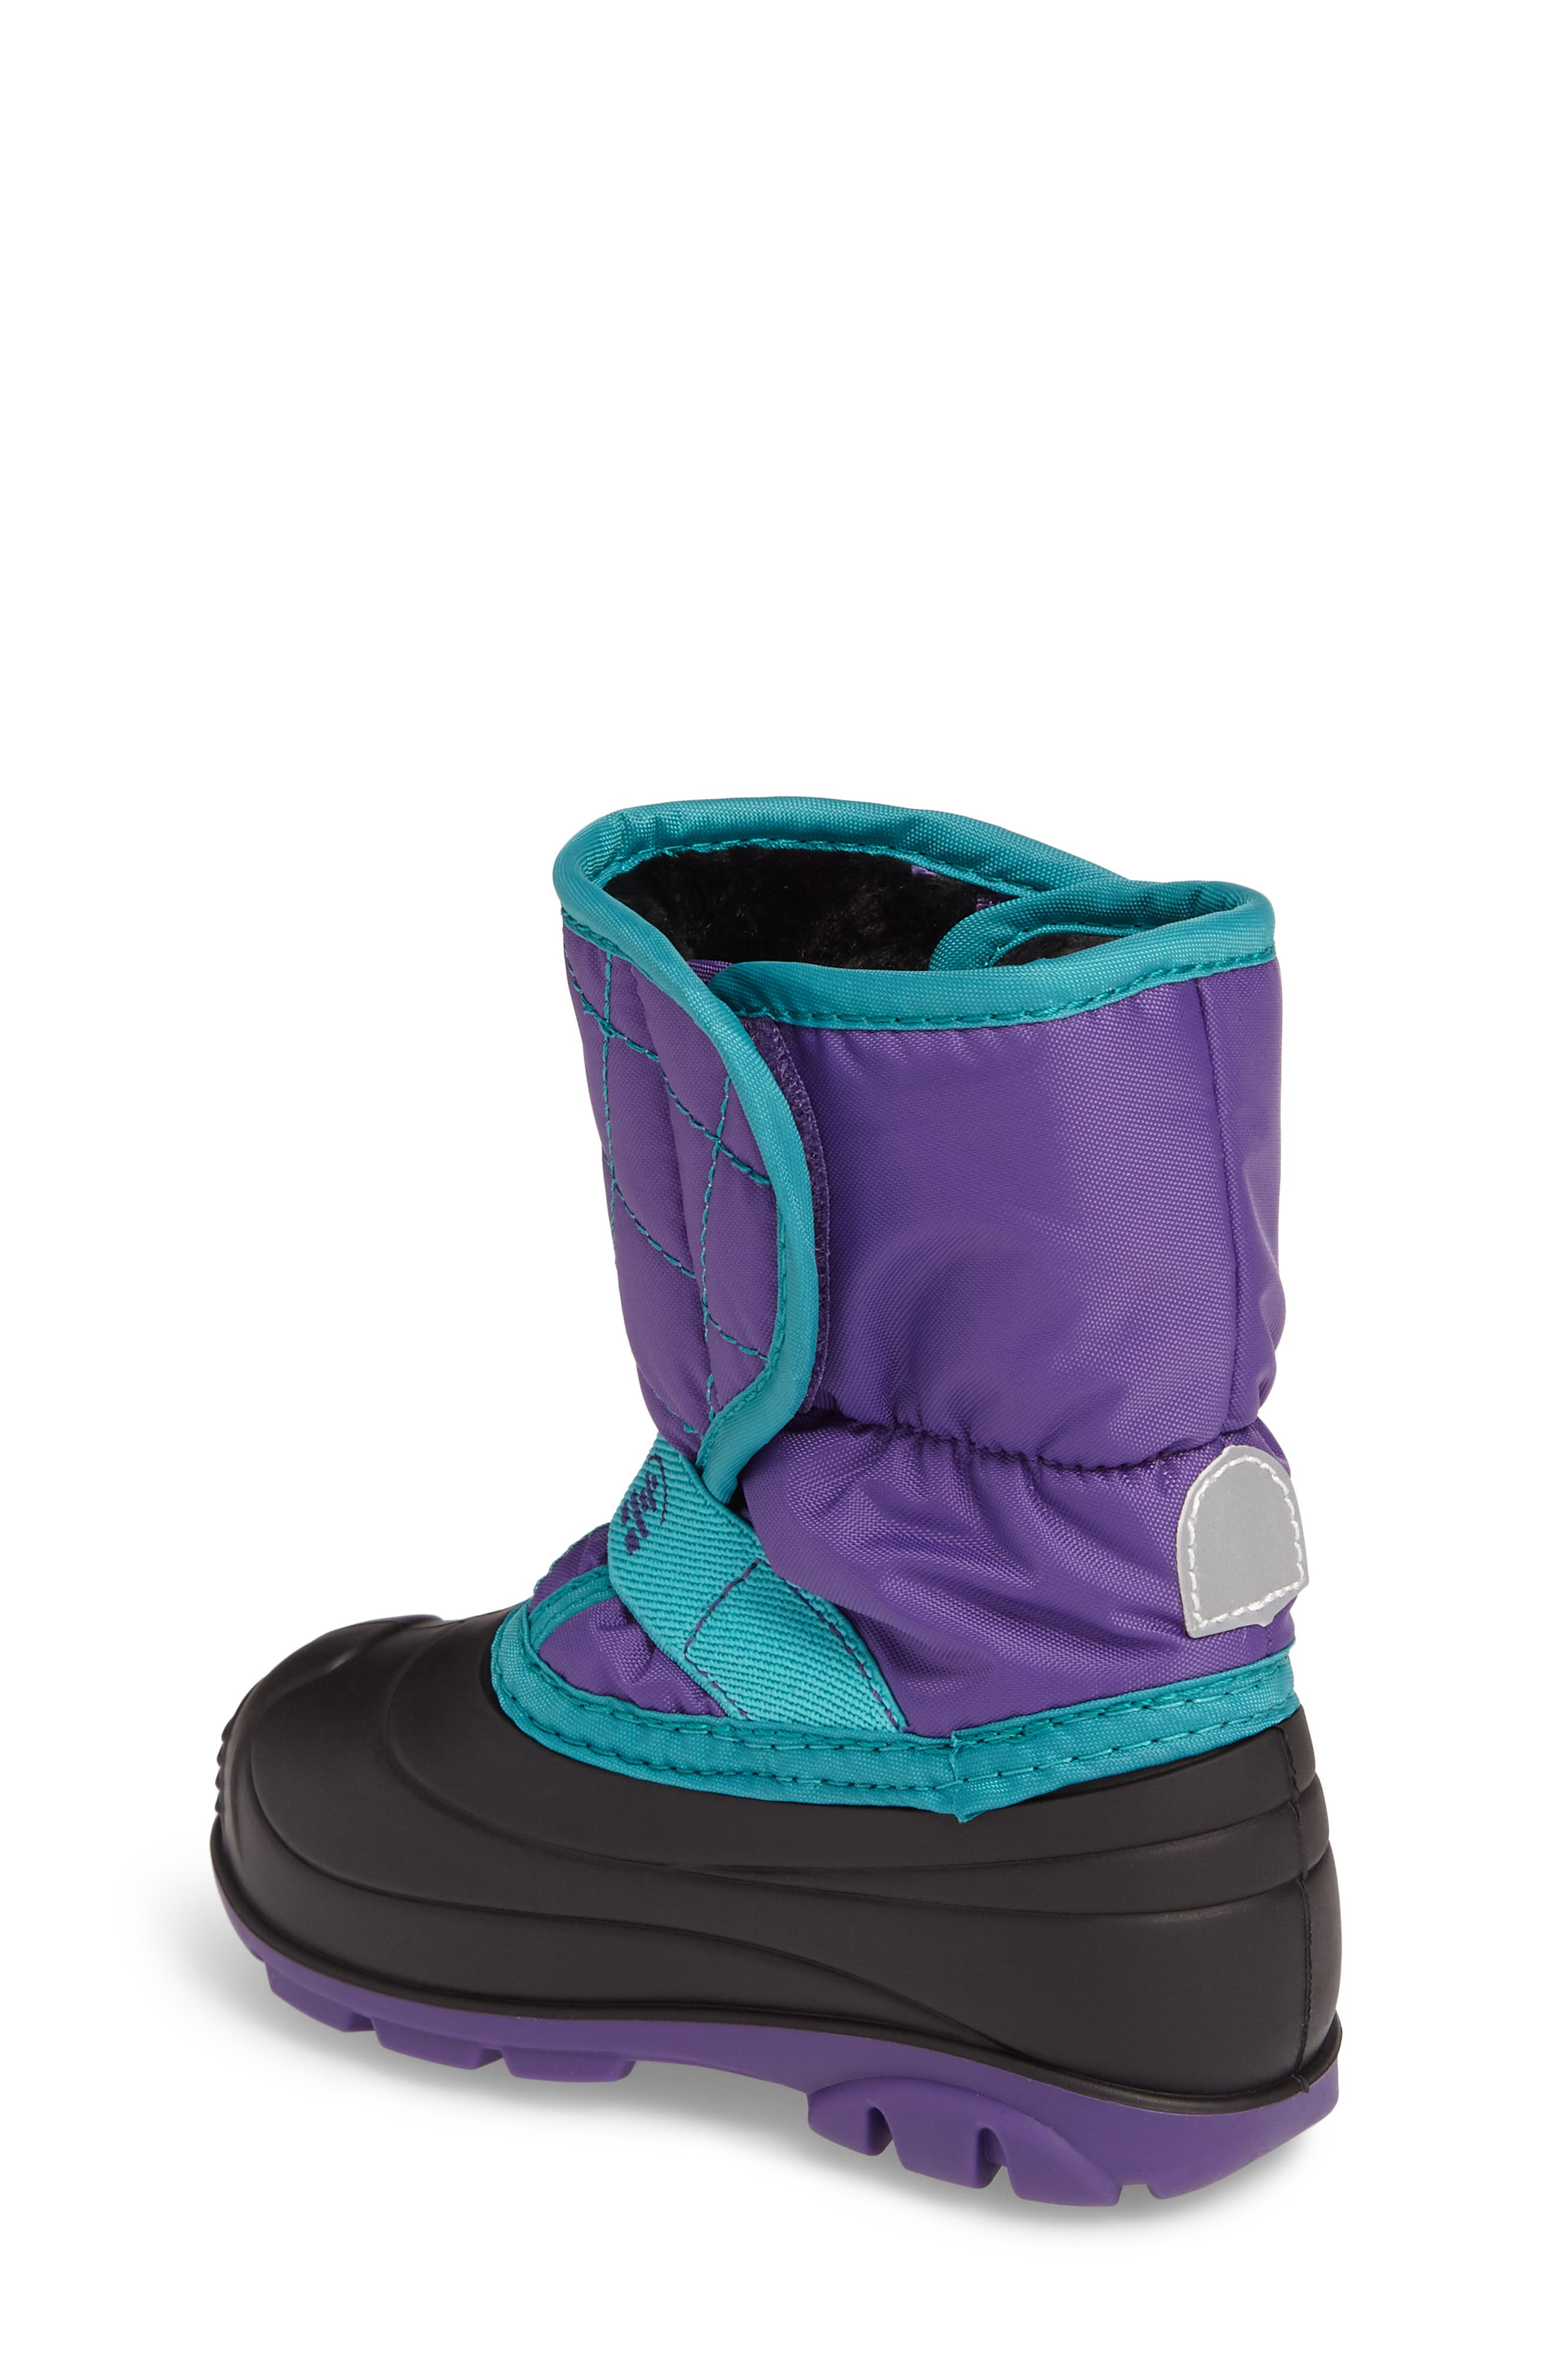 Alternate Image 2  - Kamik Pika2 Faux Fur Insulated Waterproof Snow Boot (Walker & Toddler)